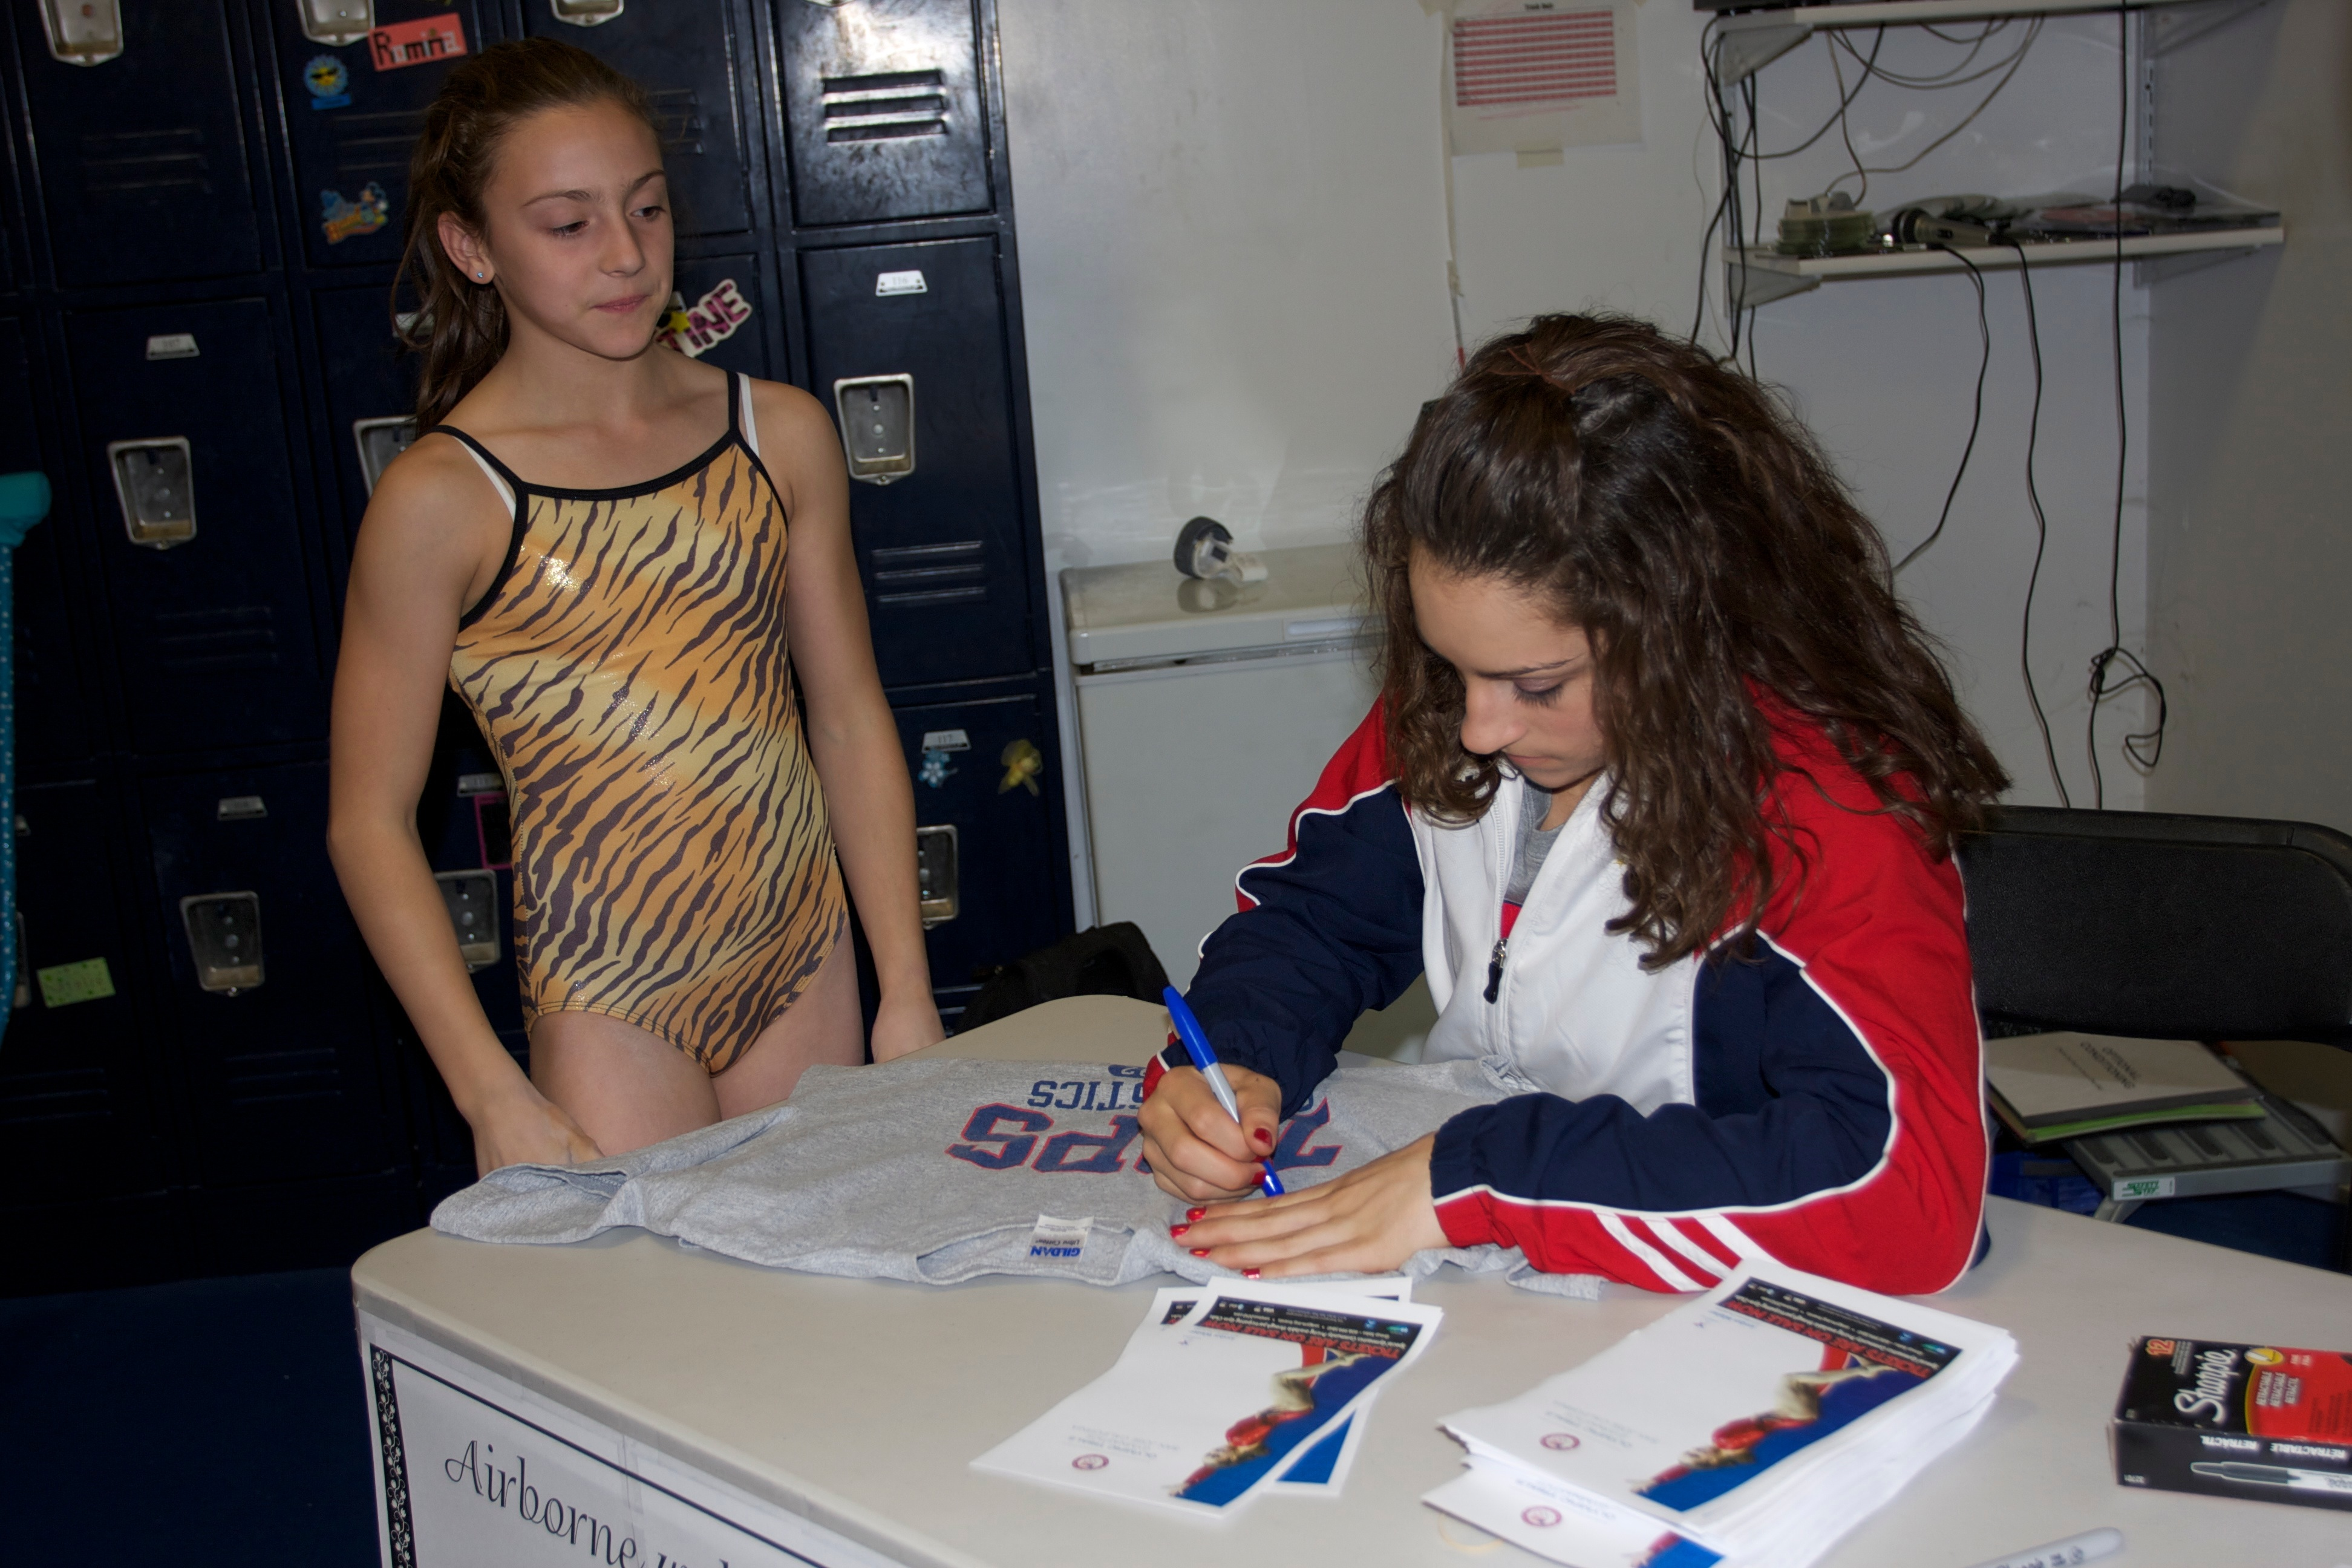 With Jordyn Wieber